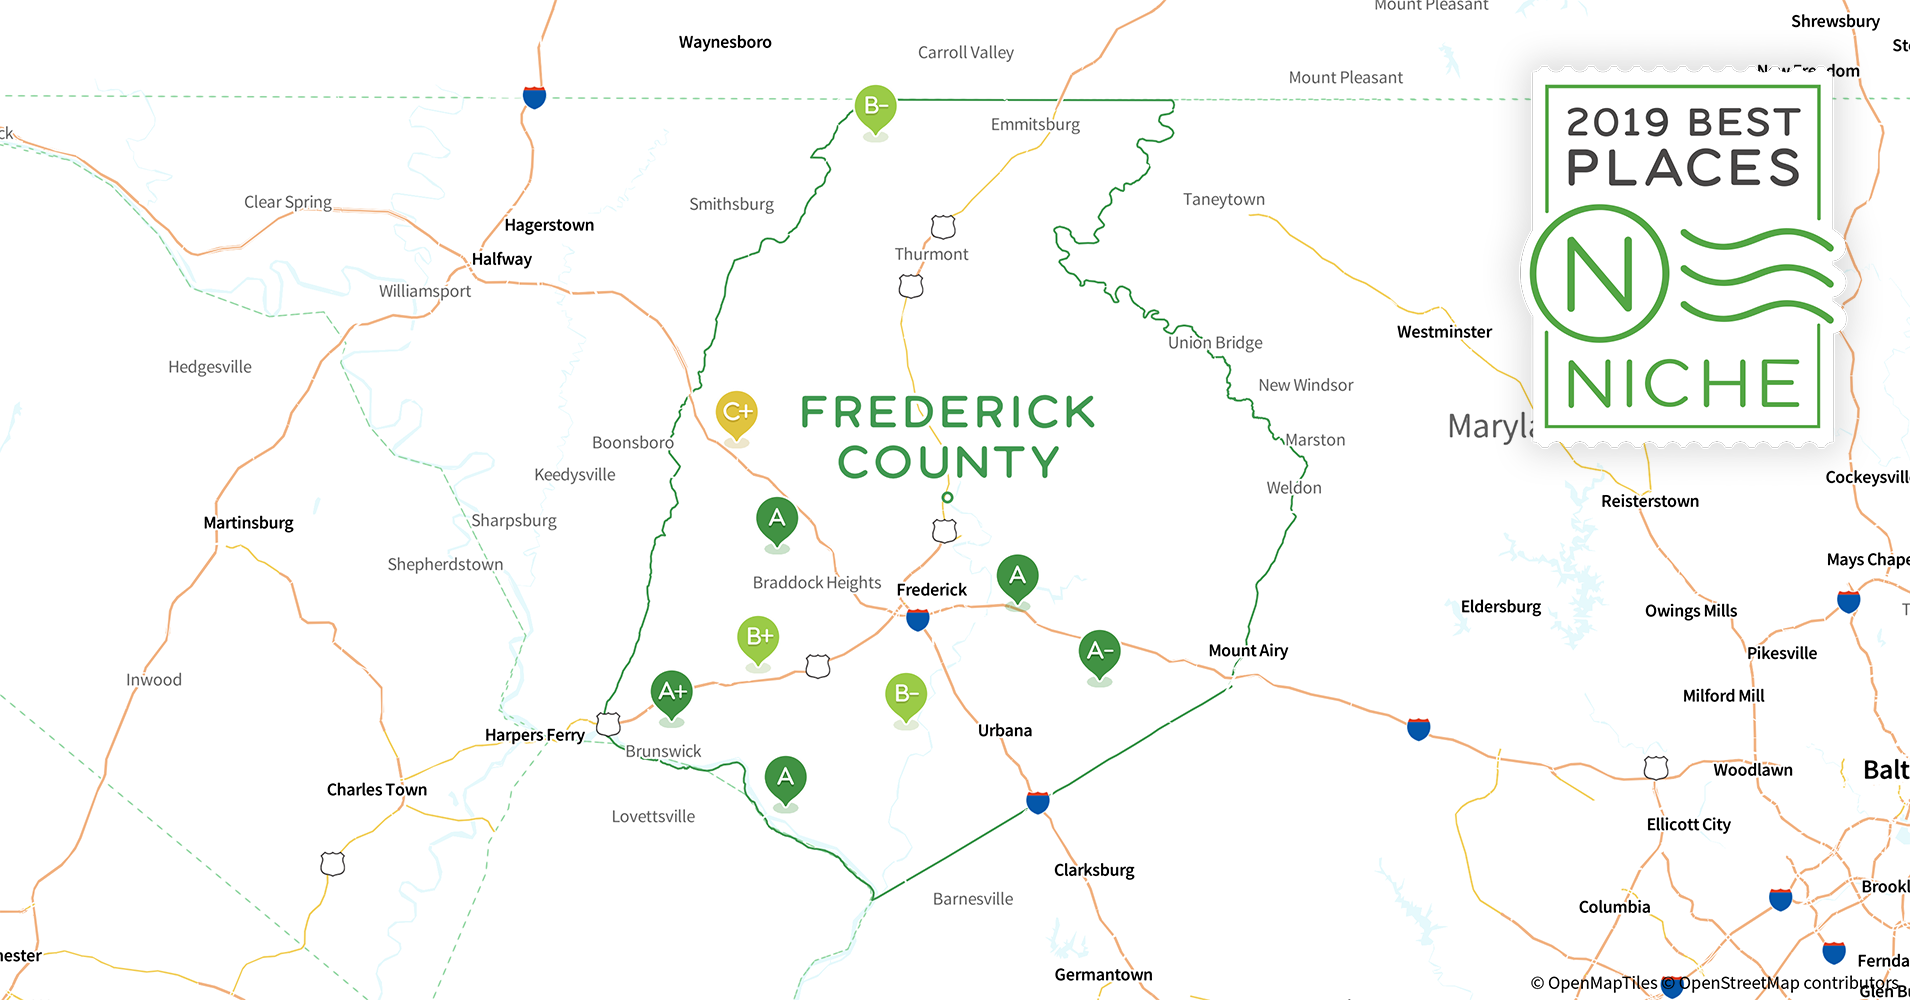 Frederick County Md Zip Code Map.2019 Best Places To Live In Frederick County Md Niche